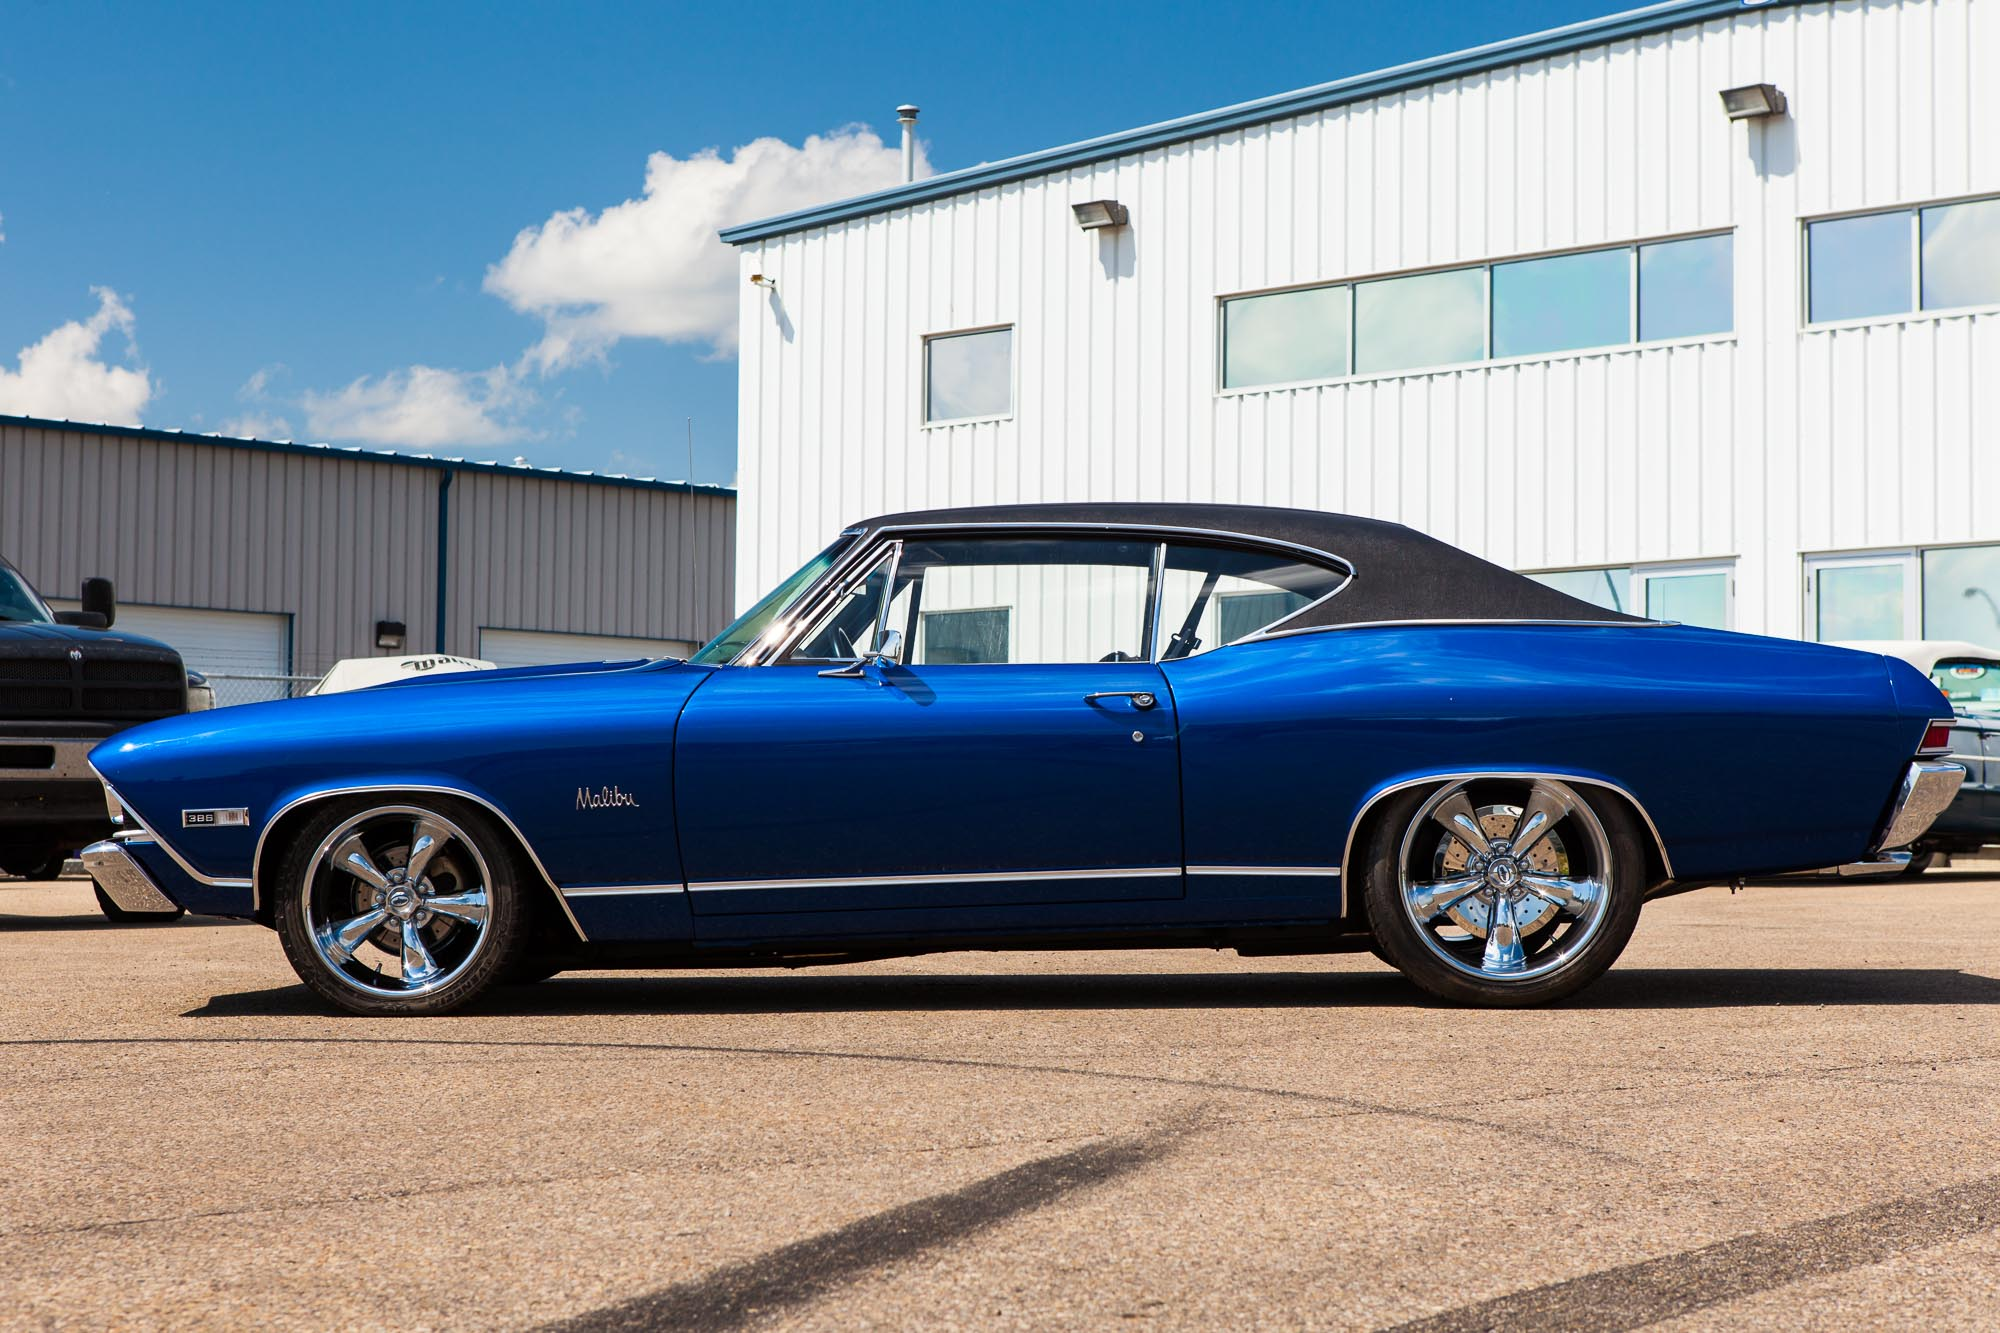 1968 Chevy Malibu - Sold - The Iron Garage